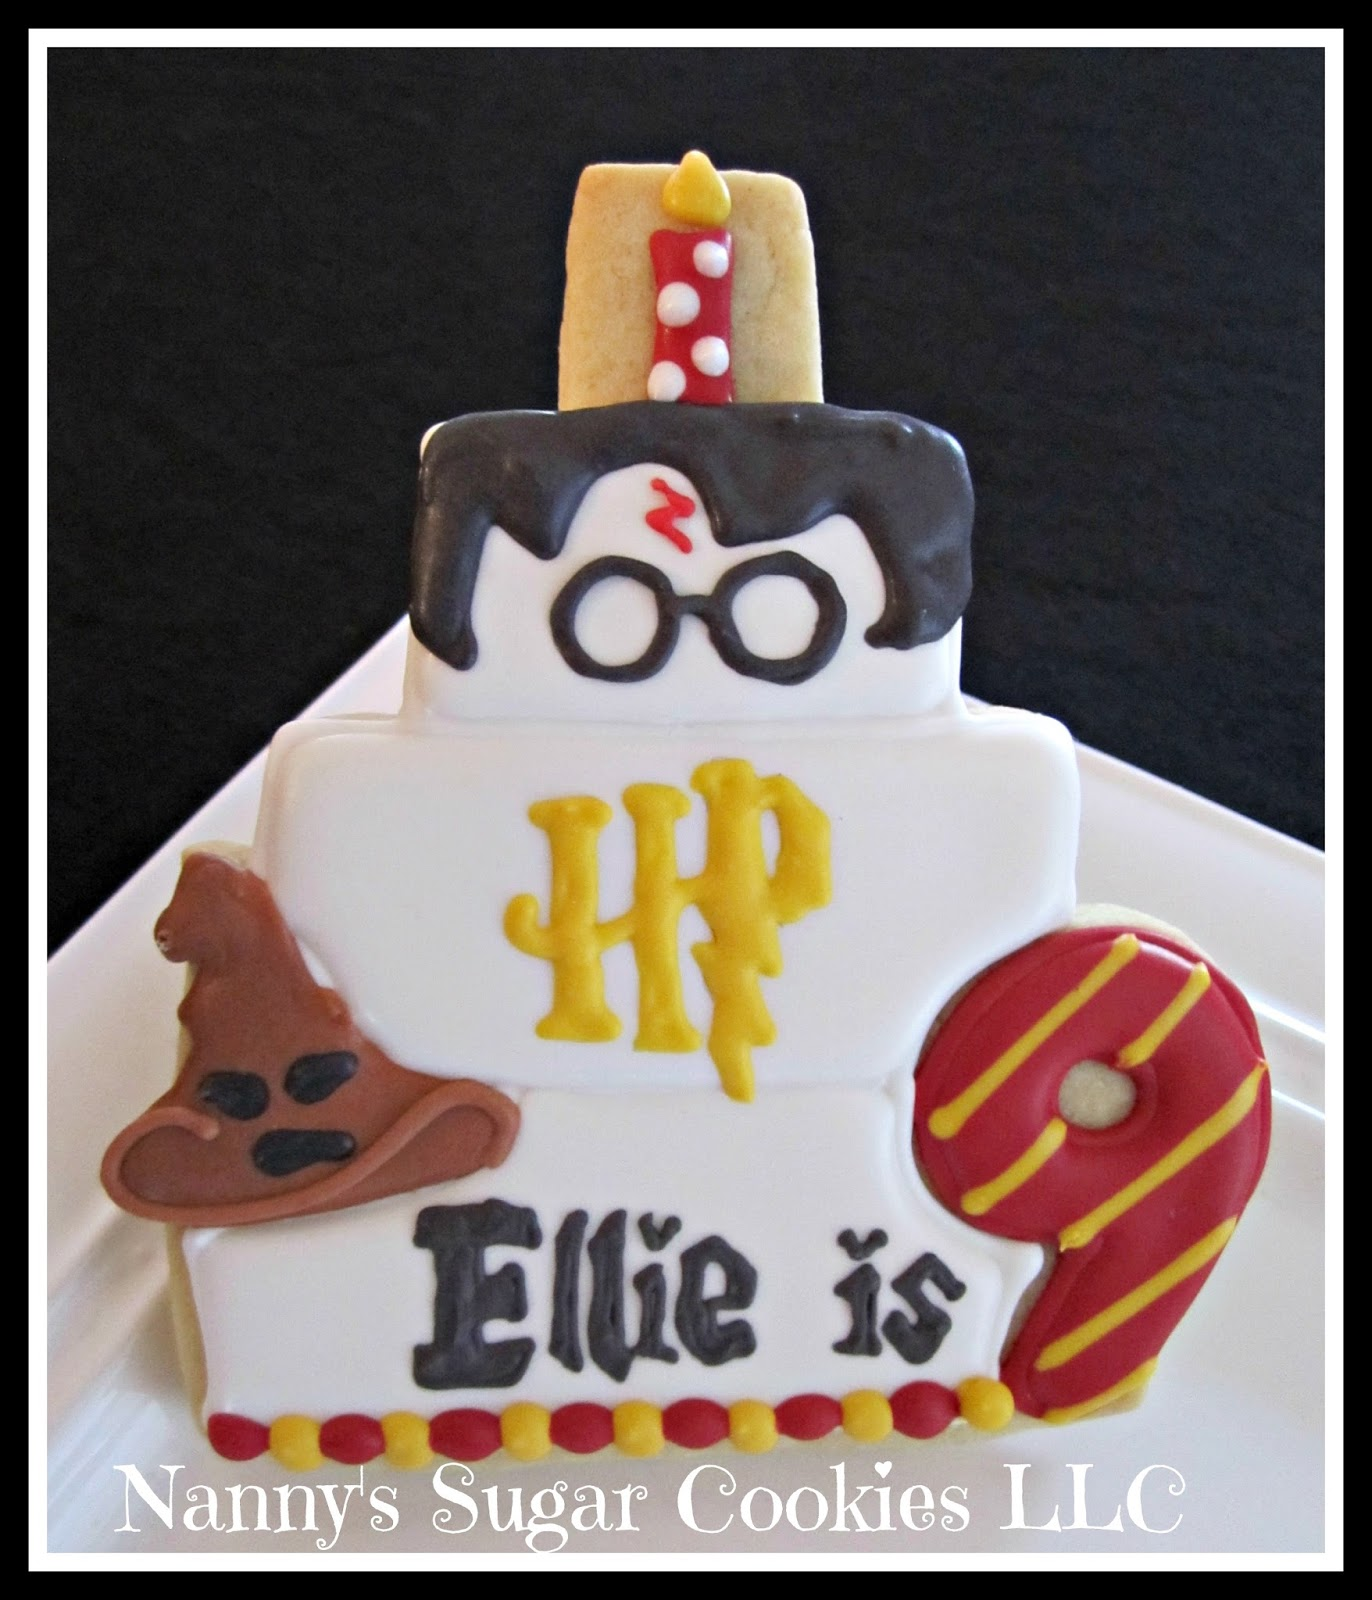 Nanny s Sugar Cookies LLC Harry Potter Themed Birthday